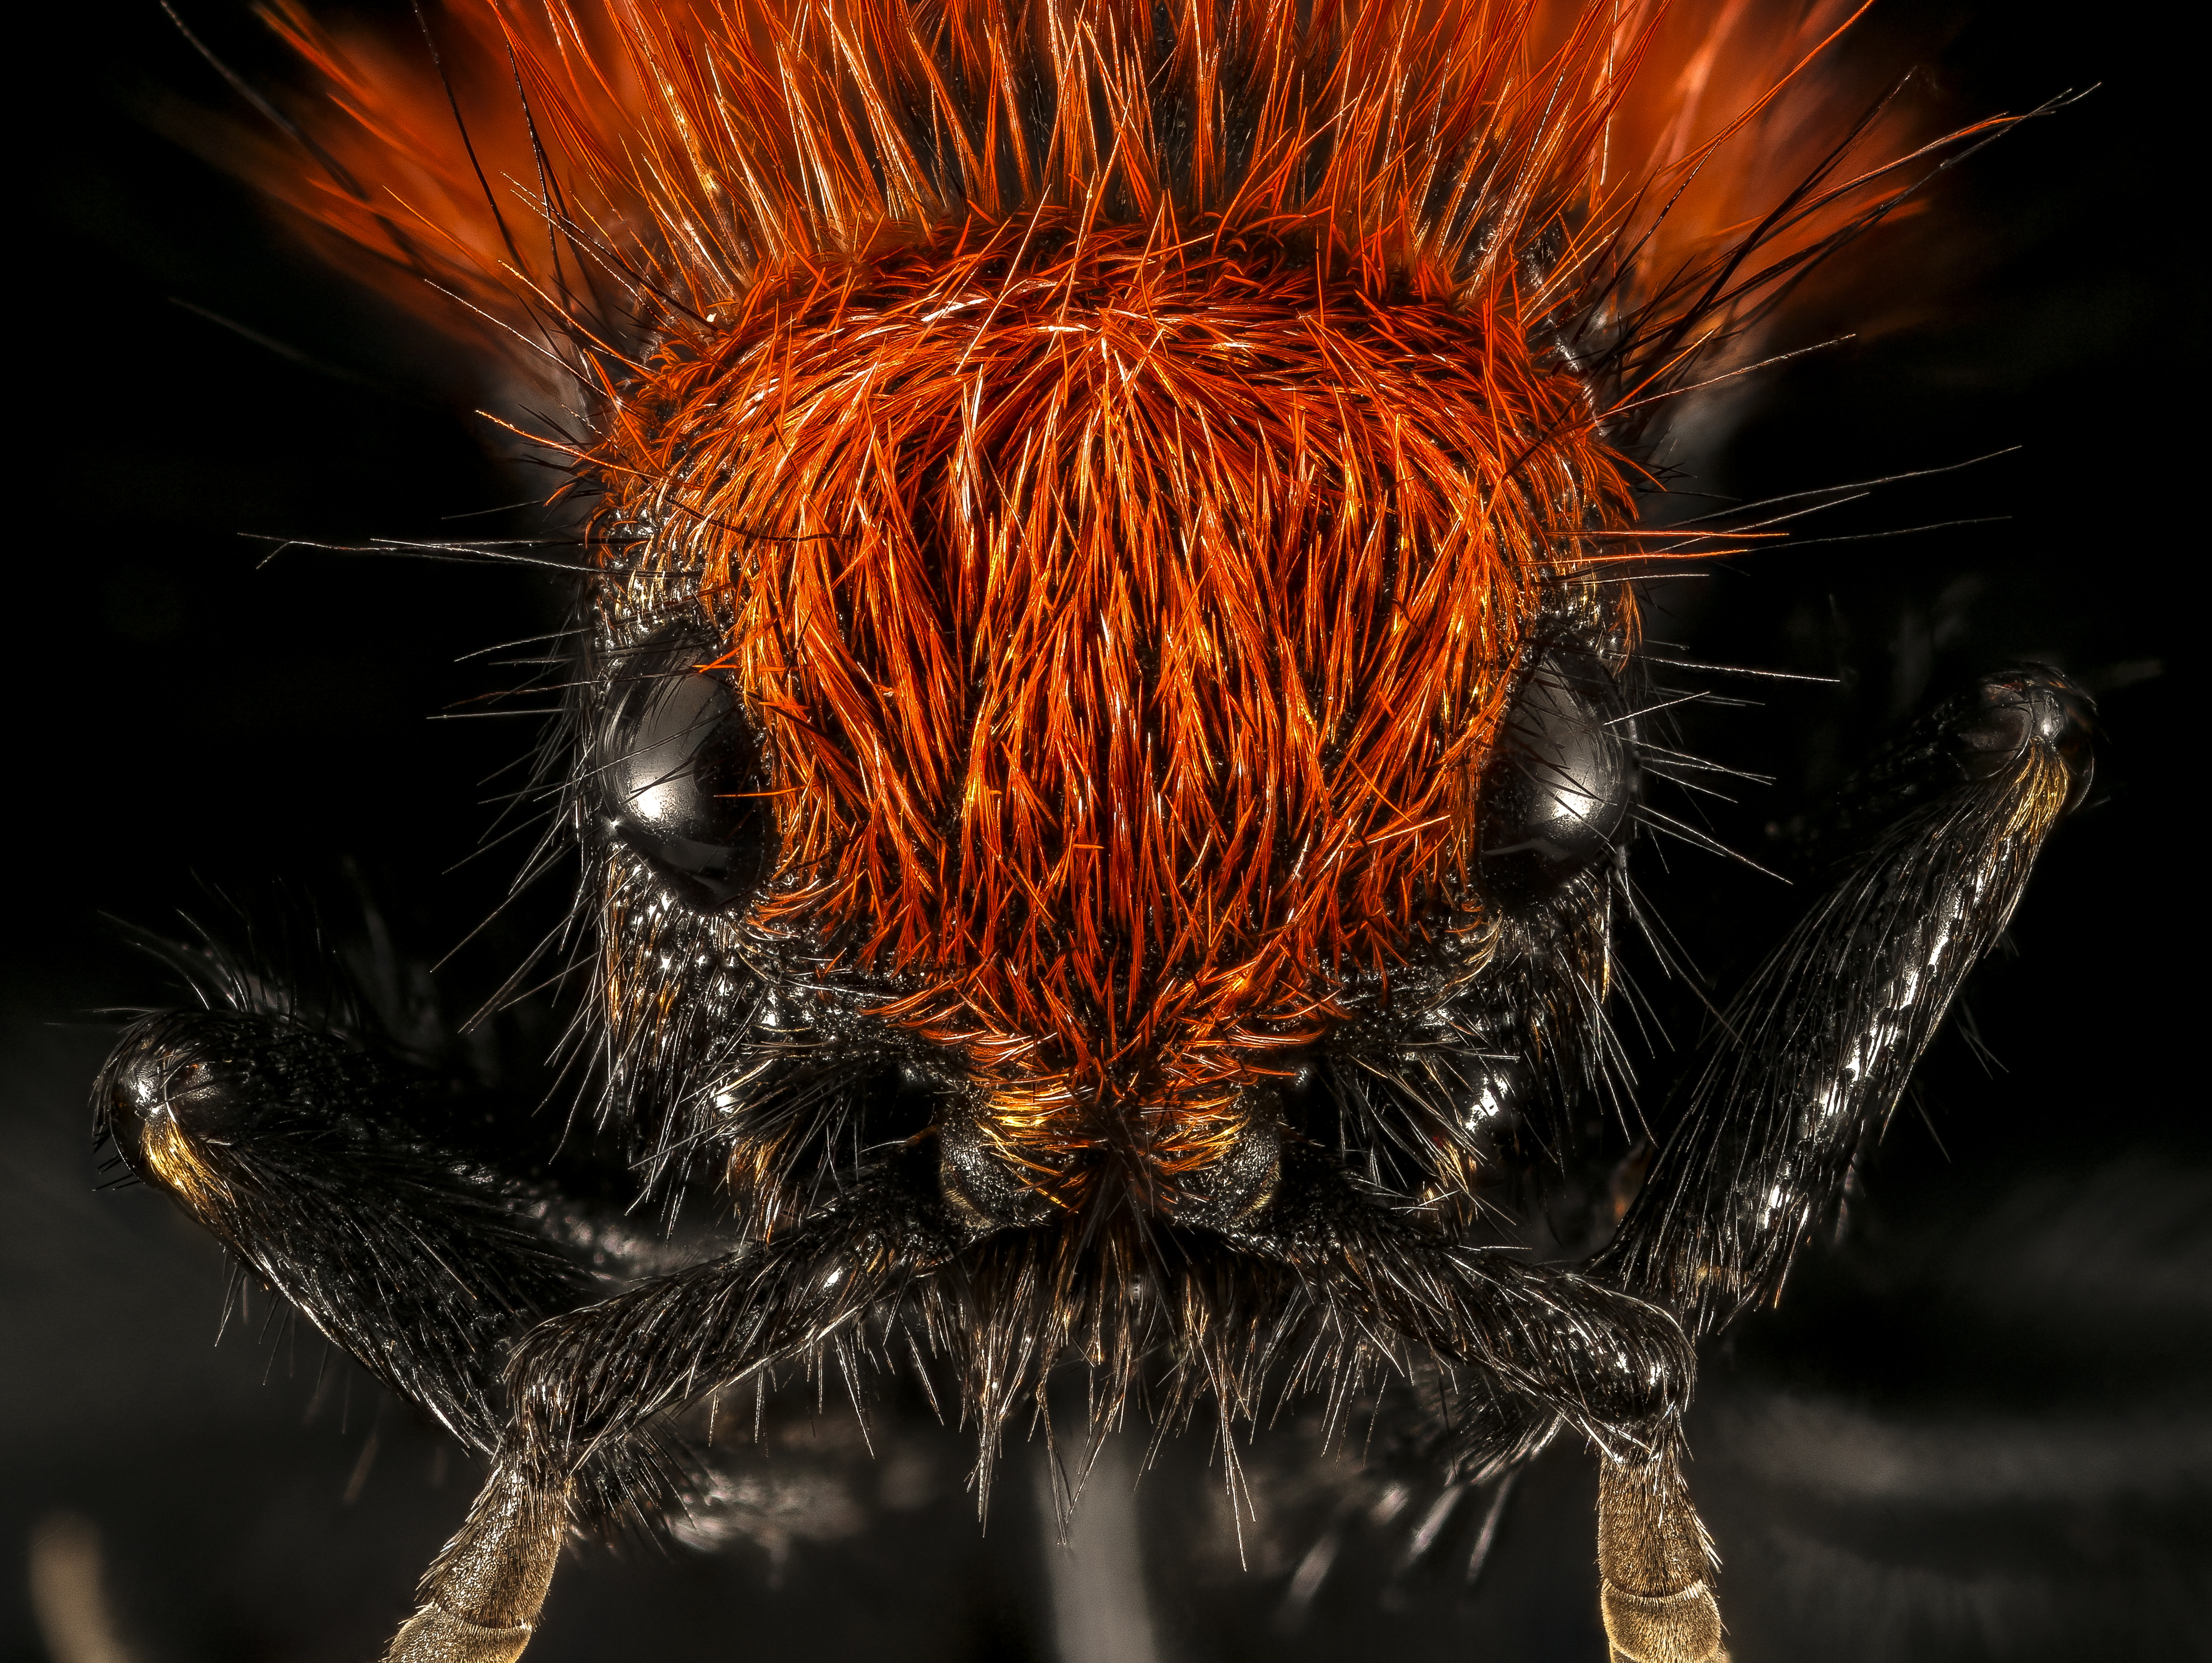 A Cow Killer Wasp aka a Velvet Ant (does not kill cows), USGS [4711 x 3541] x-post -r-HI_Res